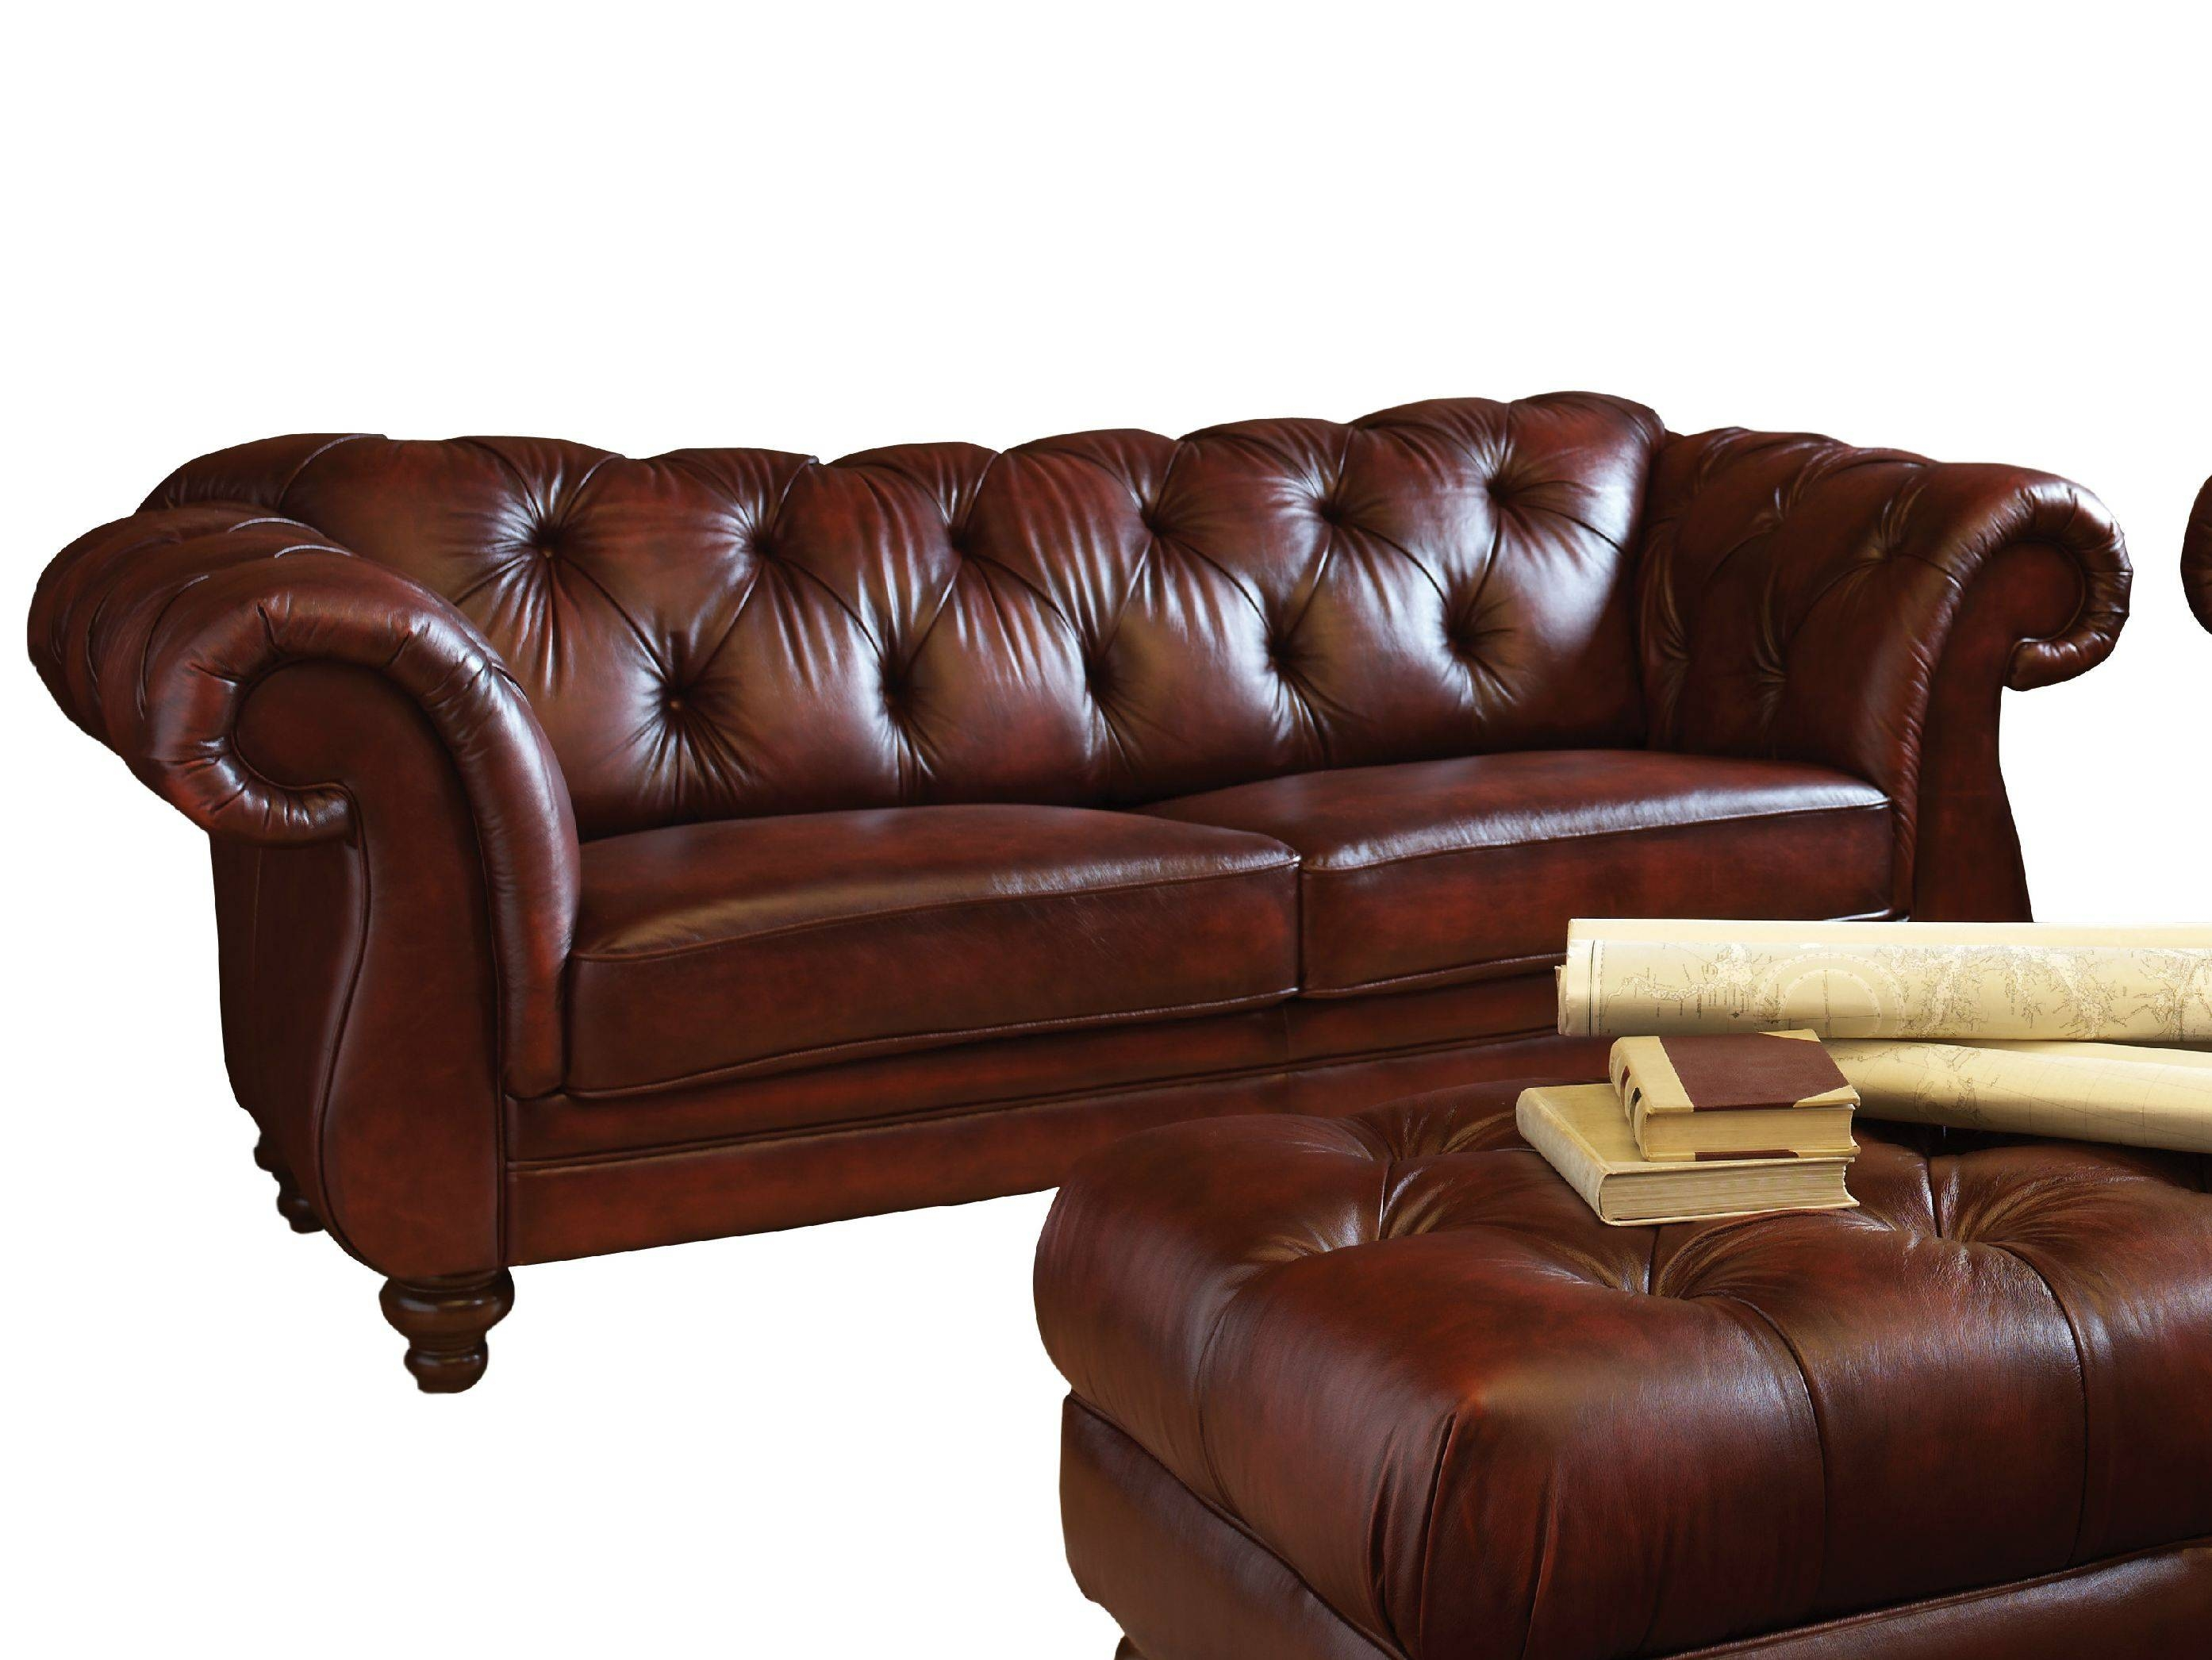 Dark Brown Color Modern Two Seater Leather Tufted Sofa With for Brown Leather Tufted Sofas (Image 4 of 15)